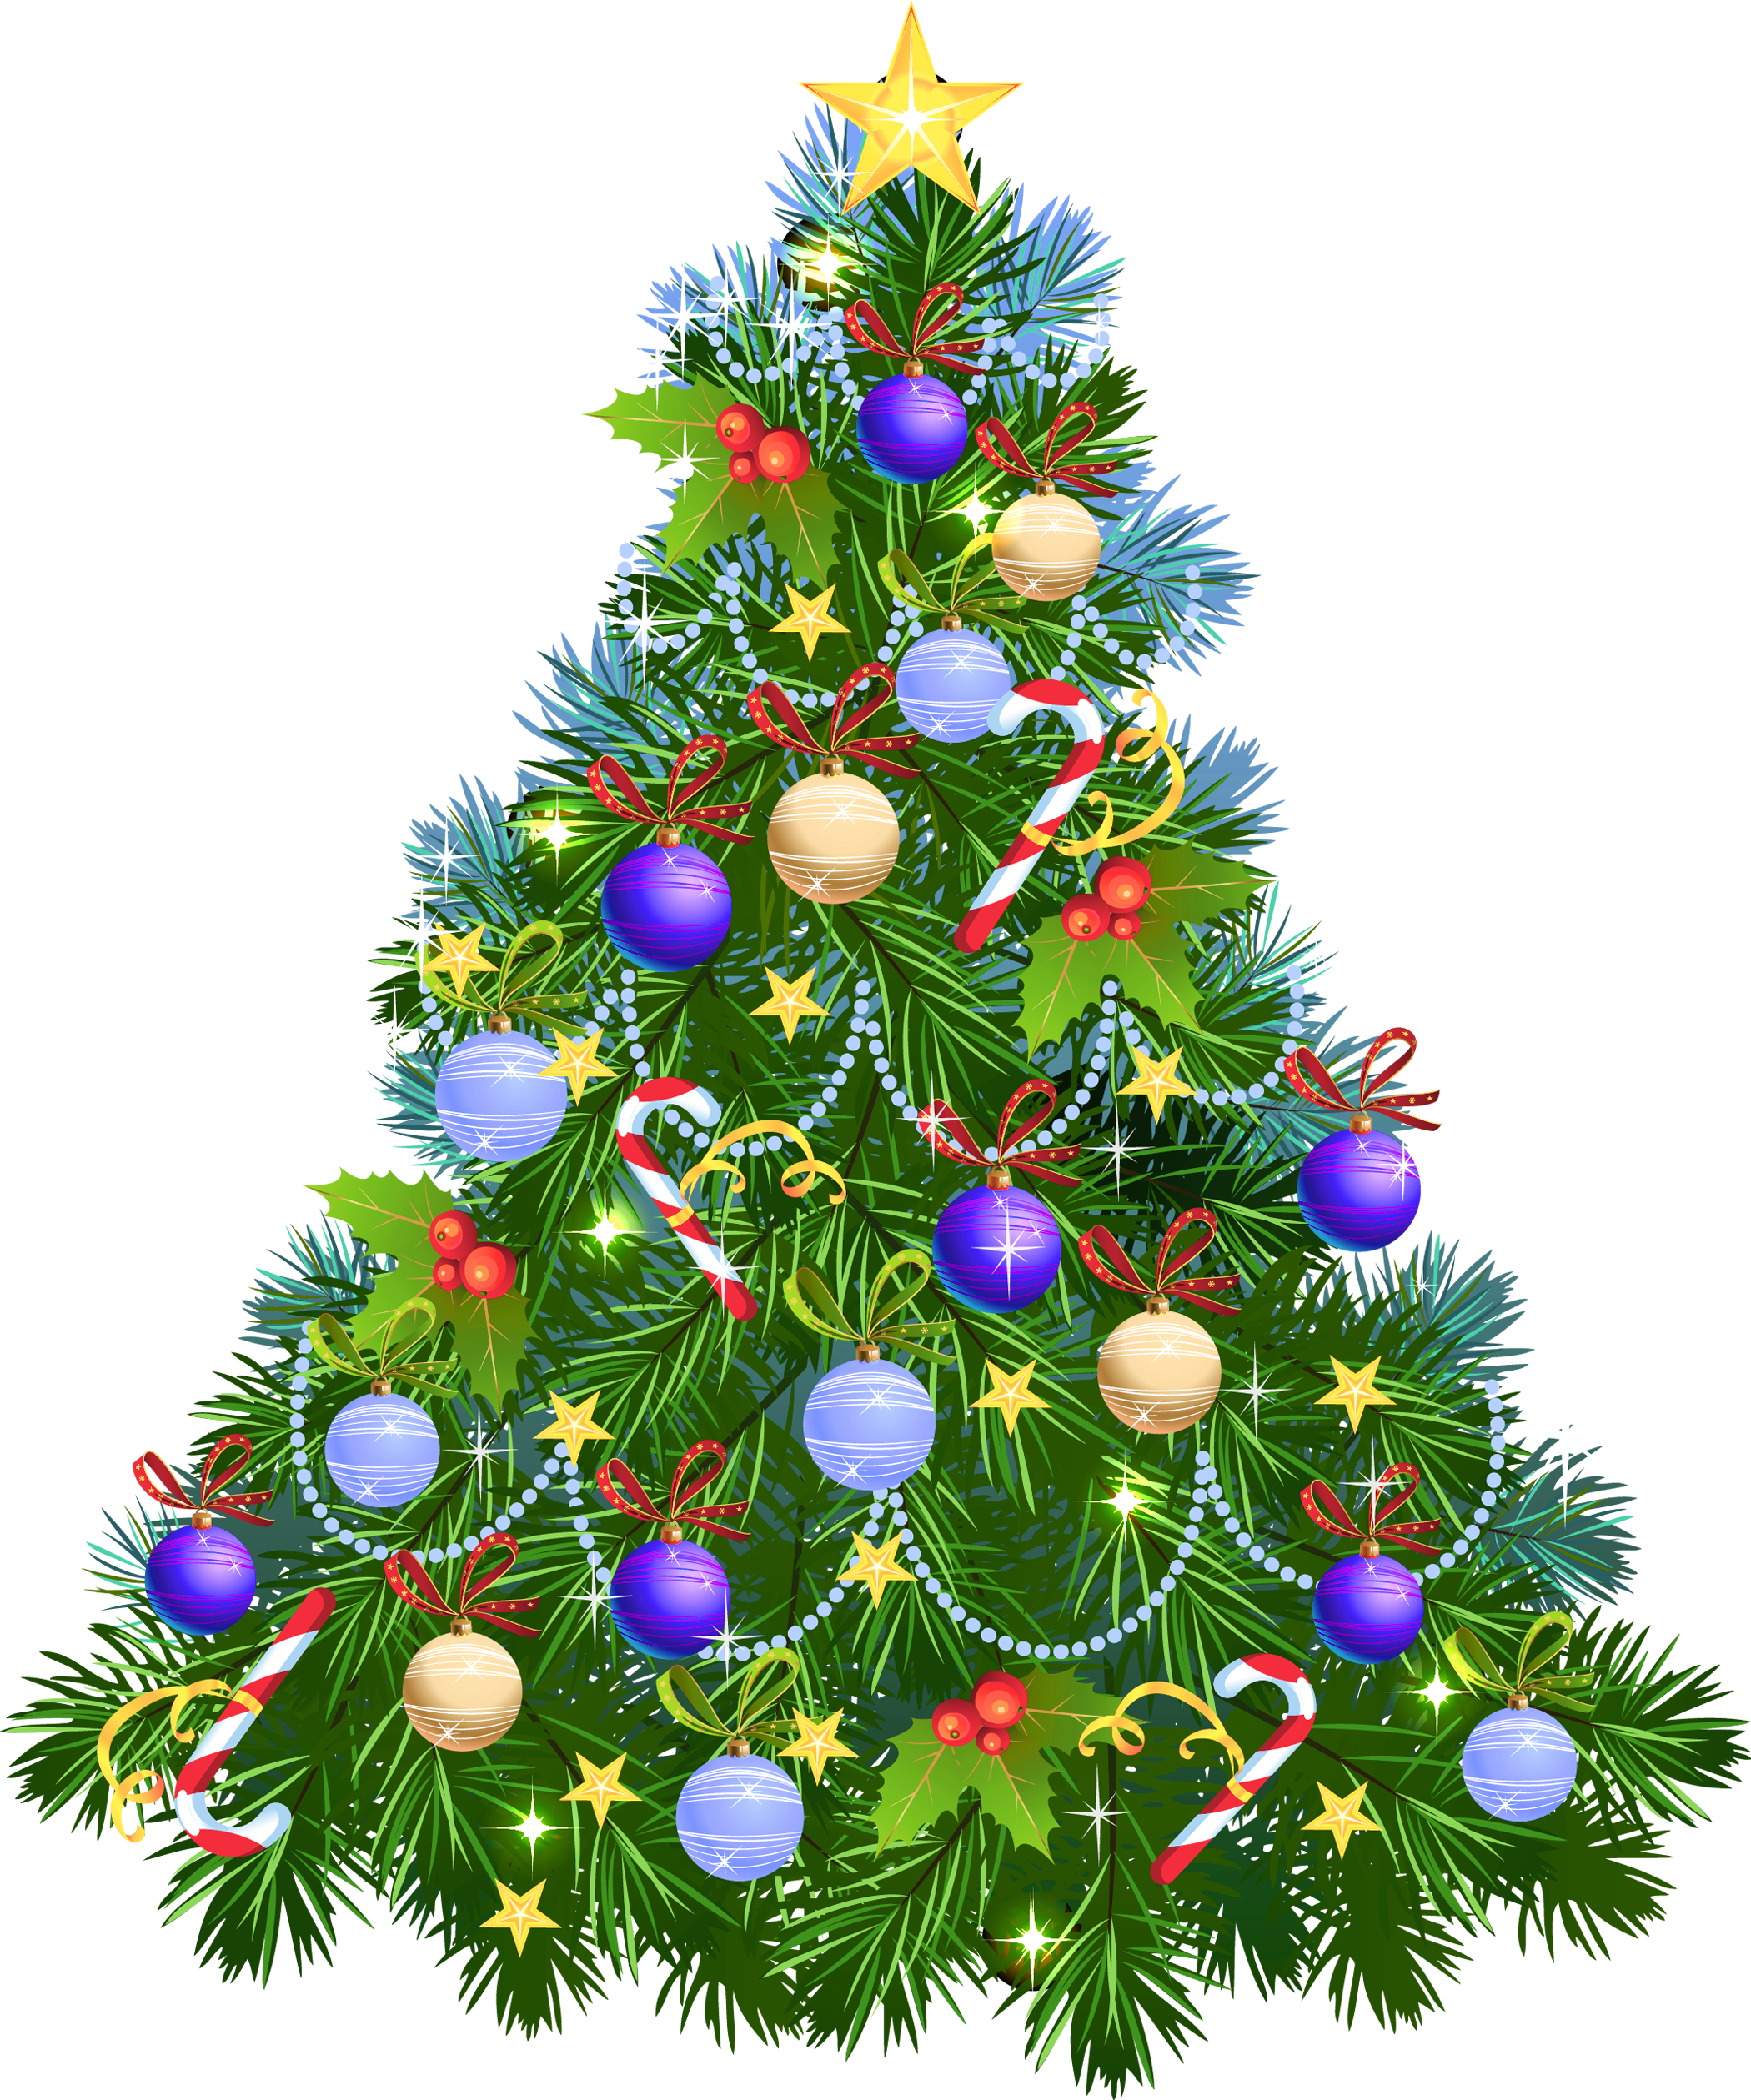 Christmas Tree Transparent Background.Christmas Tree Ornaments Transparent 35275 Free Icons And